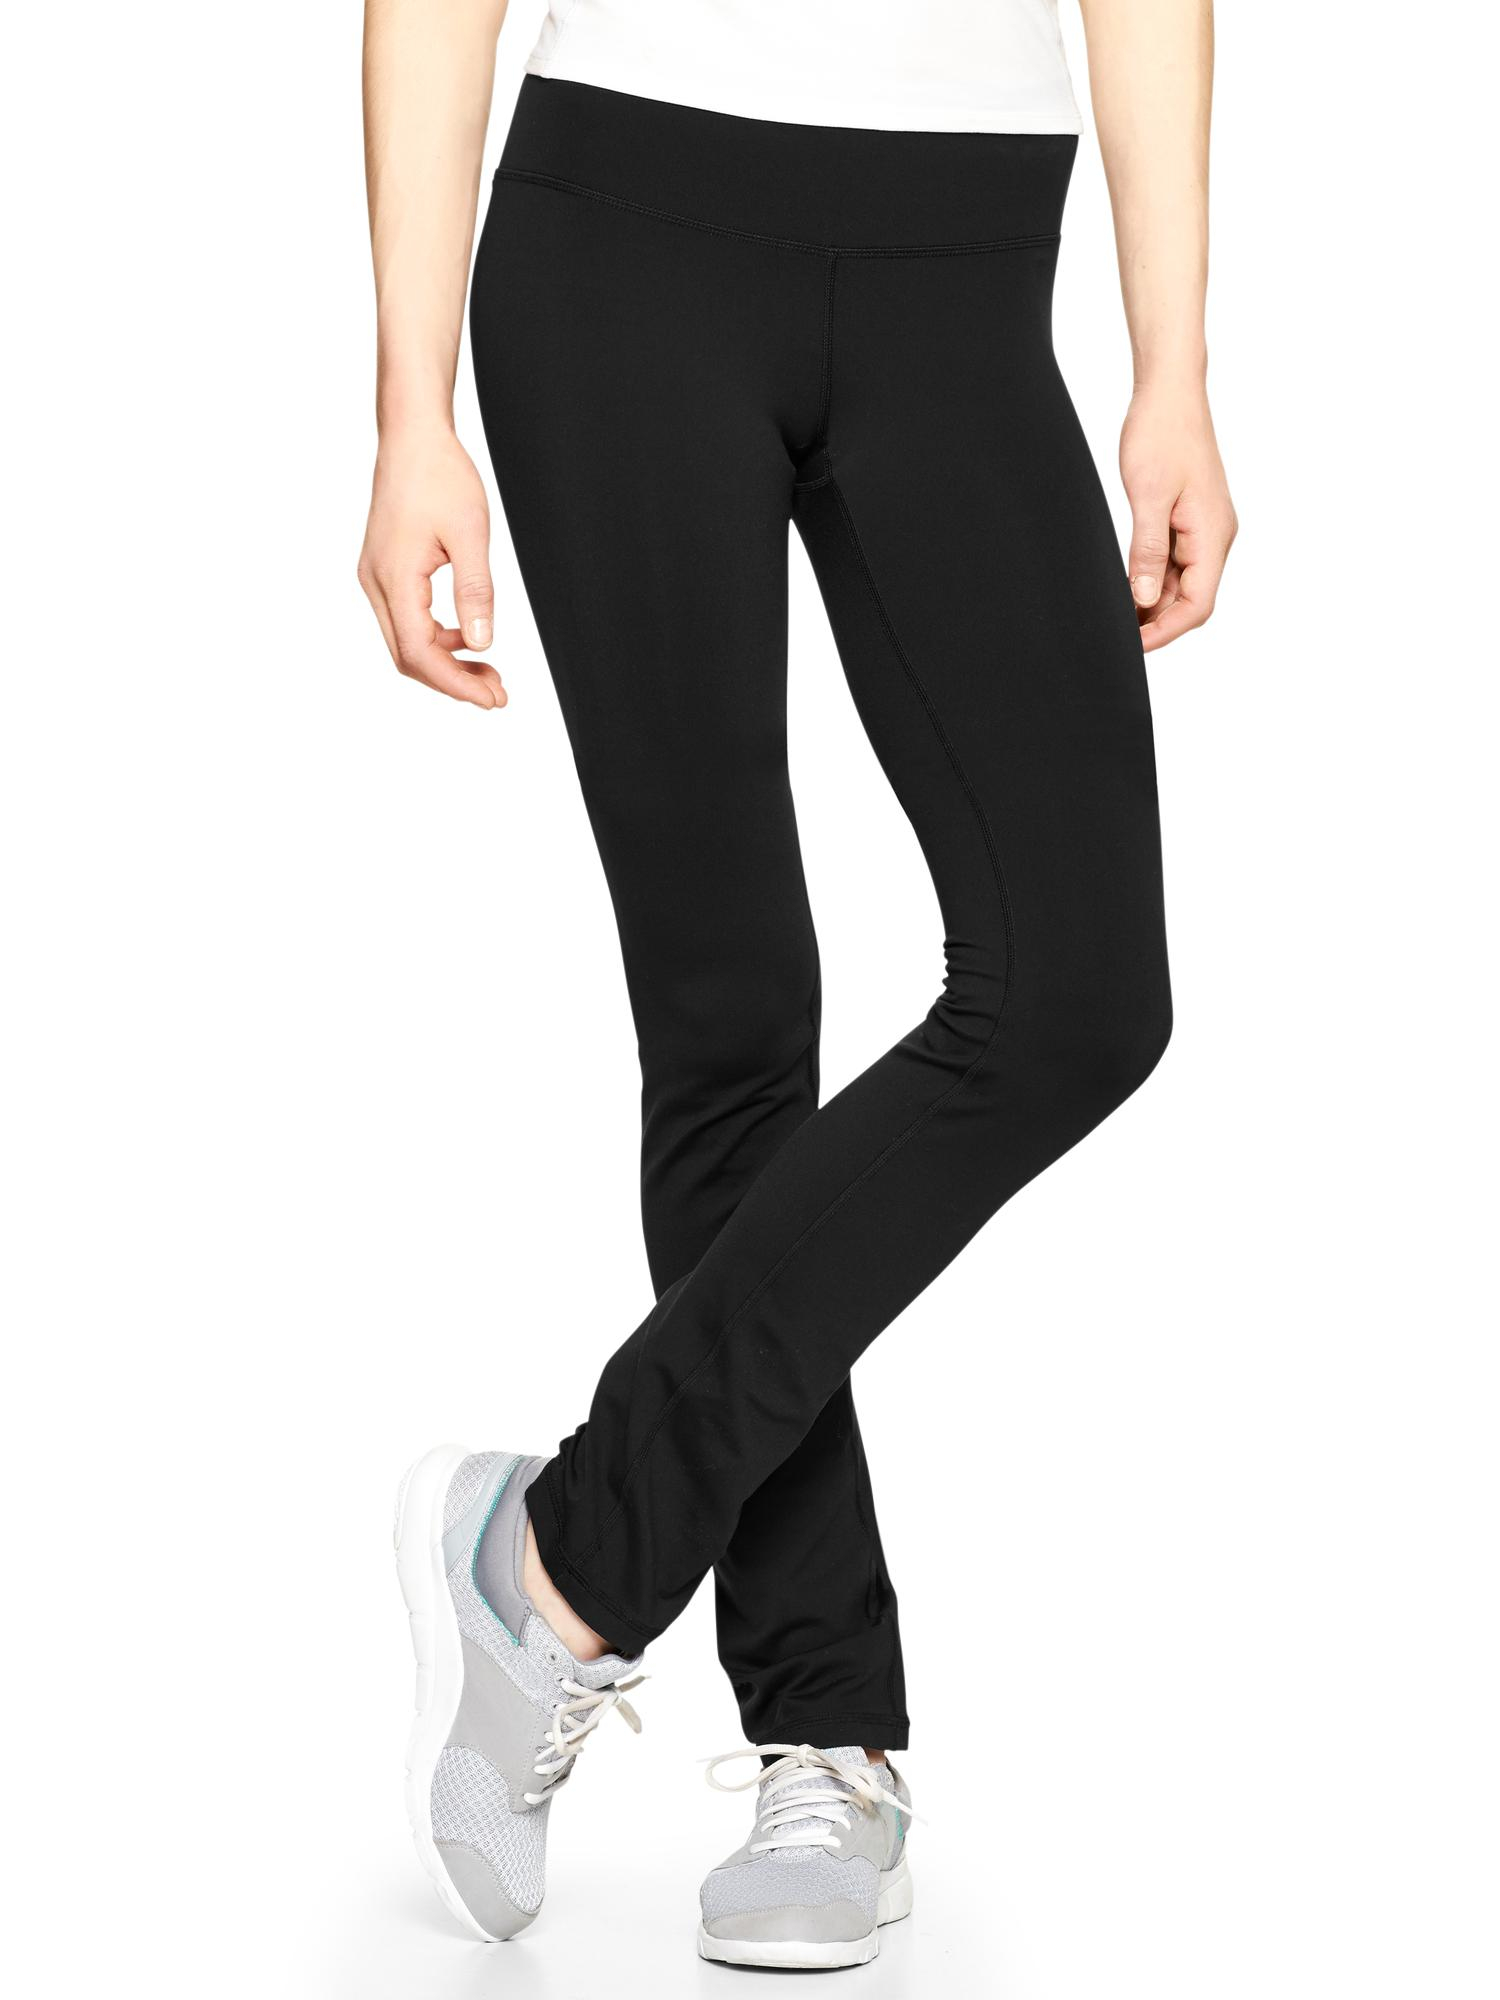 Michael Kors Collection Samantha Cropped Straight-Leg Pants, Black Details Michael Kors Collection